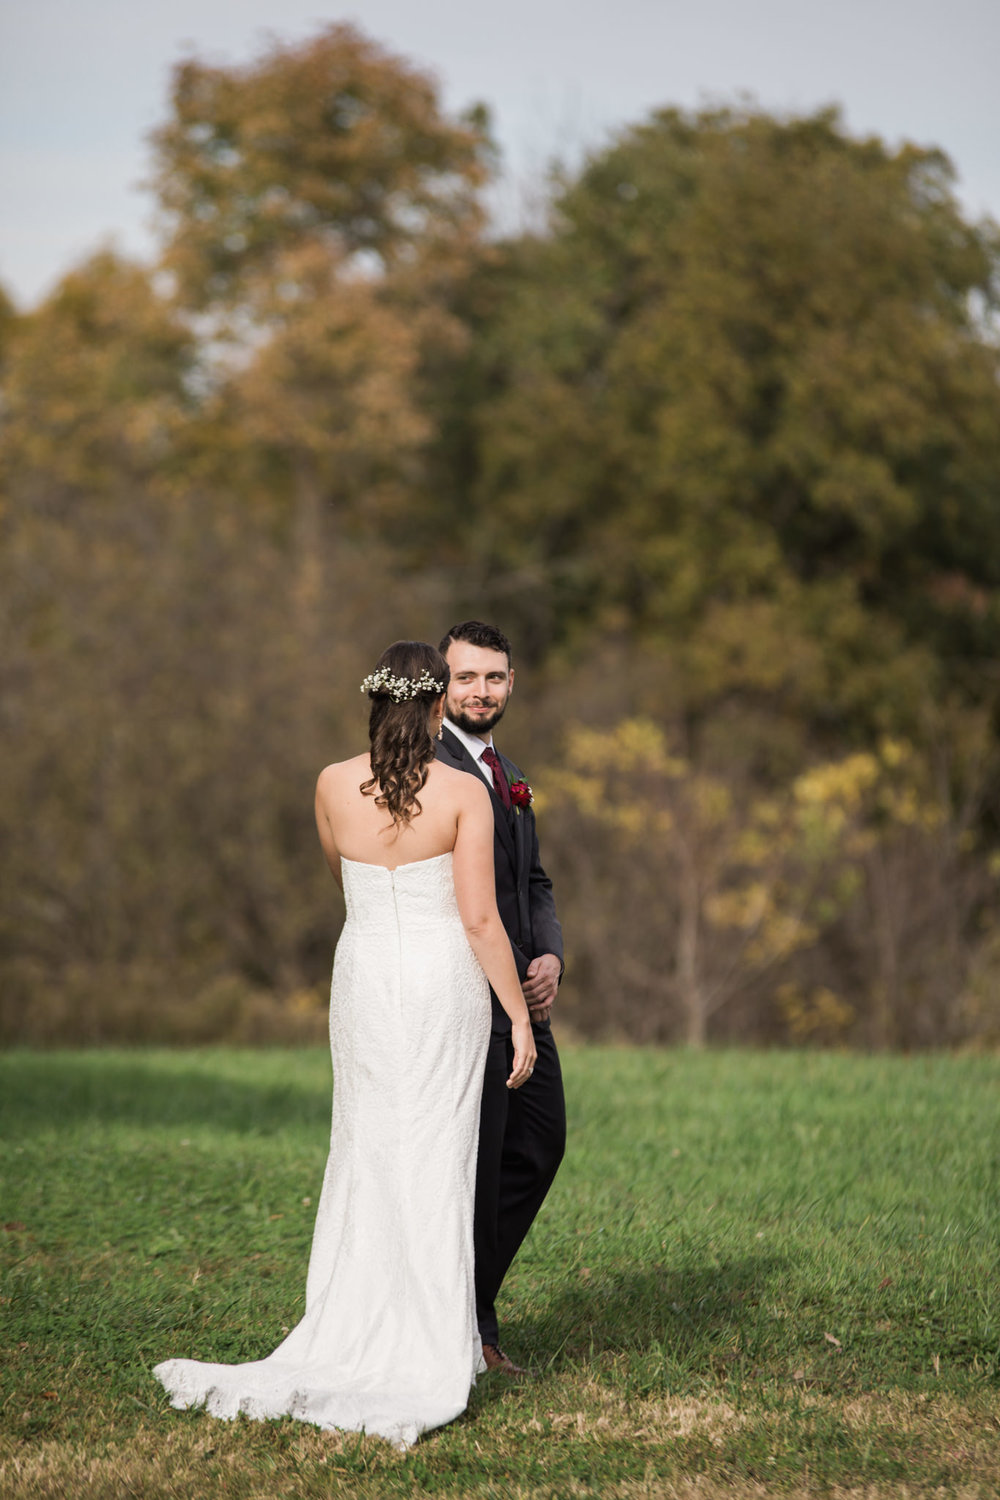 Jordan&Zack_Wedding_Blog_0026.jpg